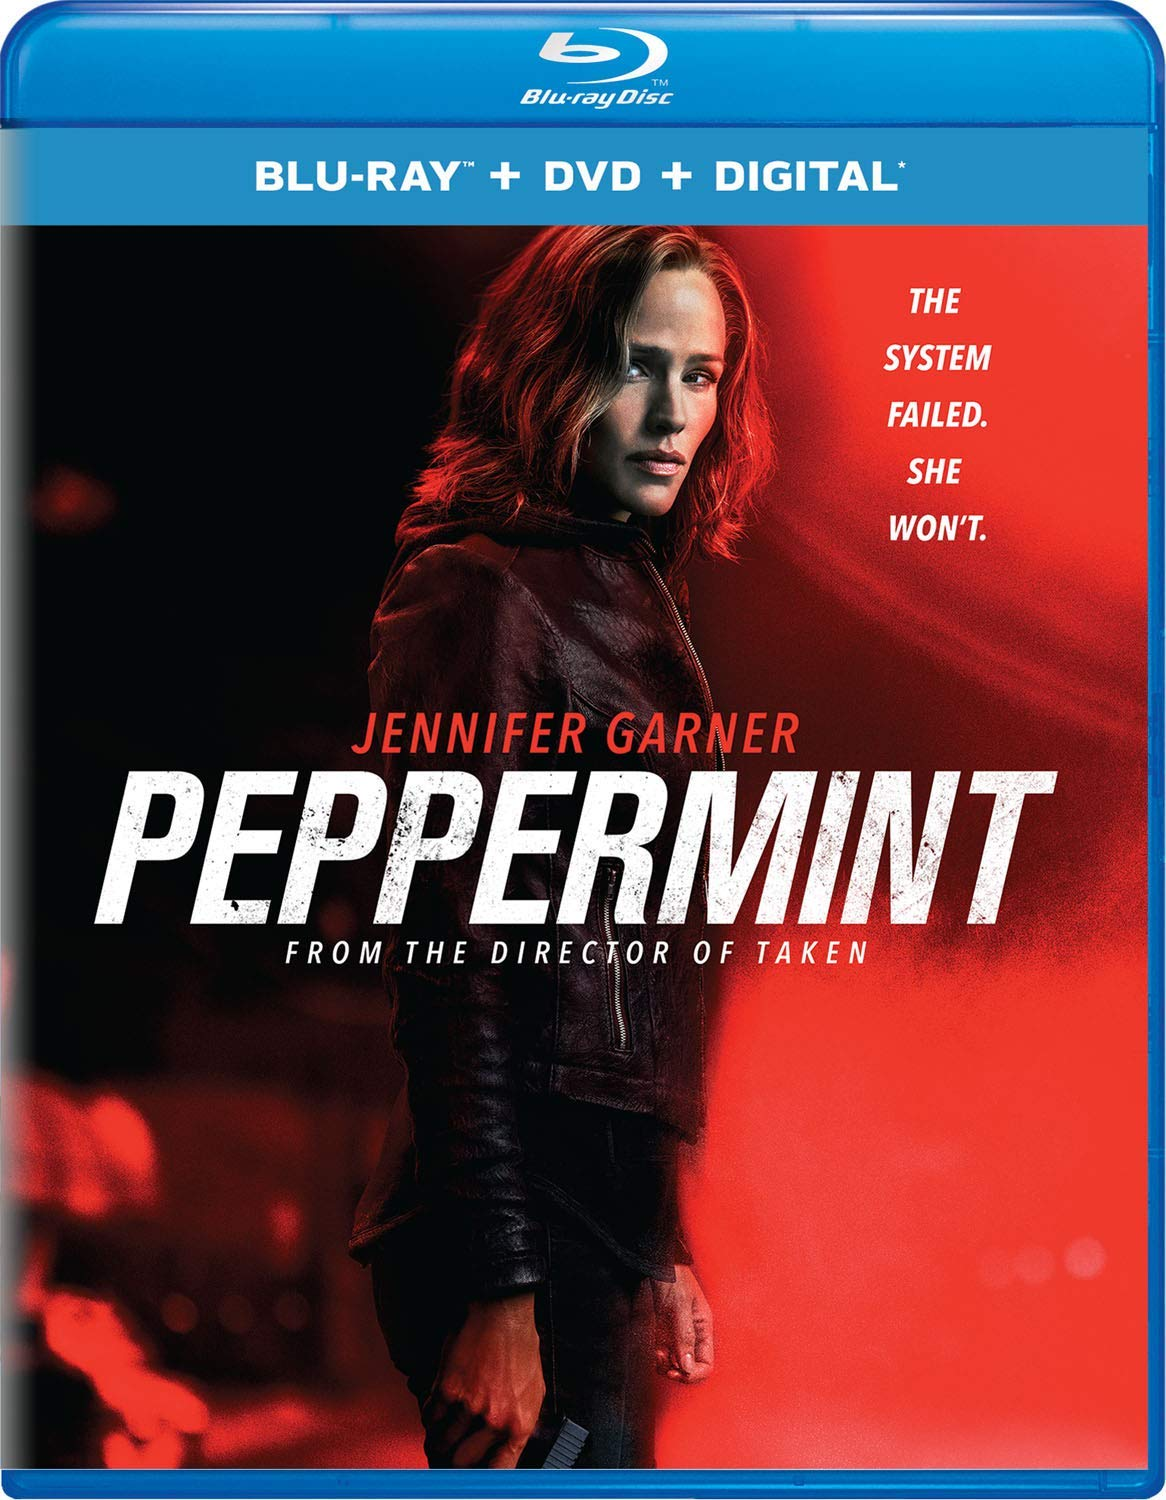 Peppermint (2018) poster image